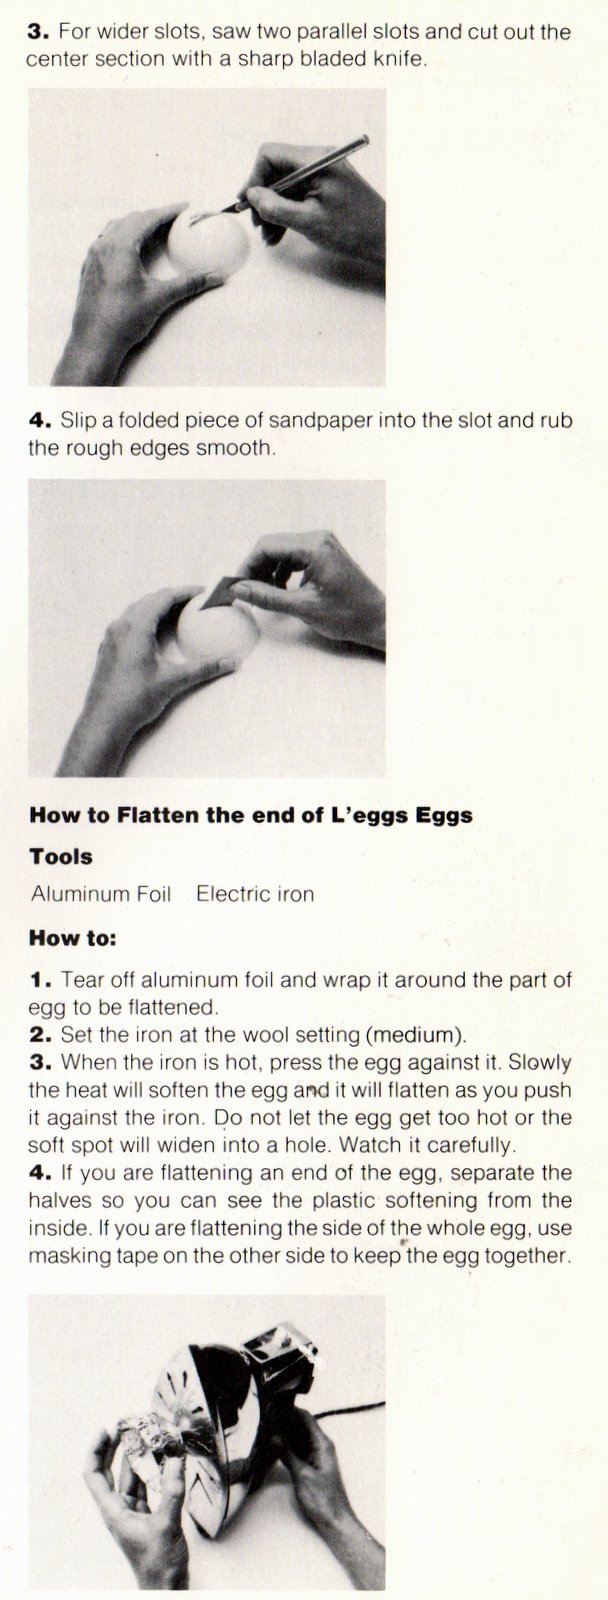 How to make L'eggs eggs into vintage crafts (1)